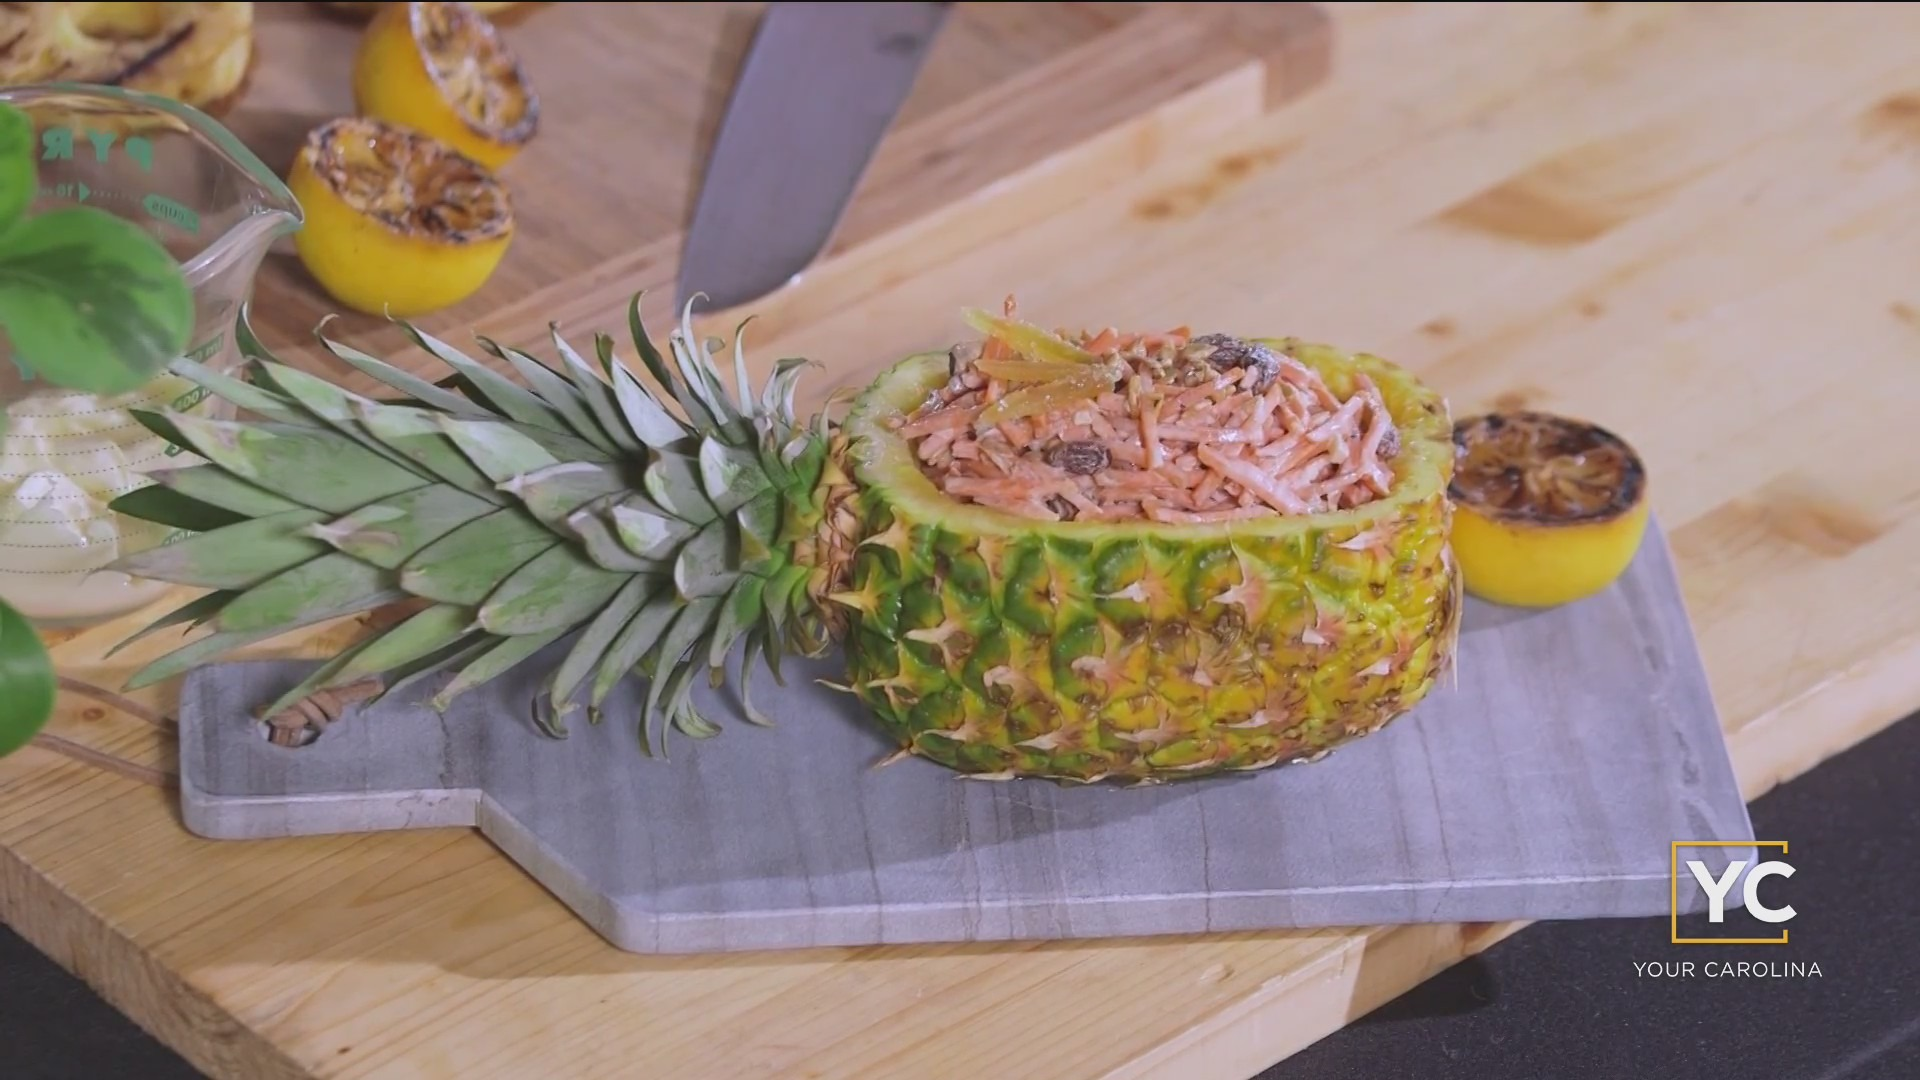 Chef's Kitchen - Clark's Carrot Raisin Salad with Grilled Pineapple